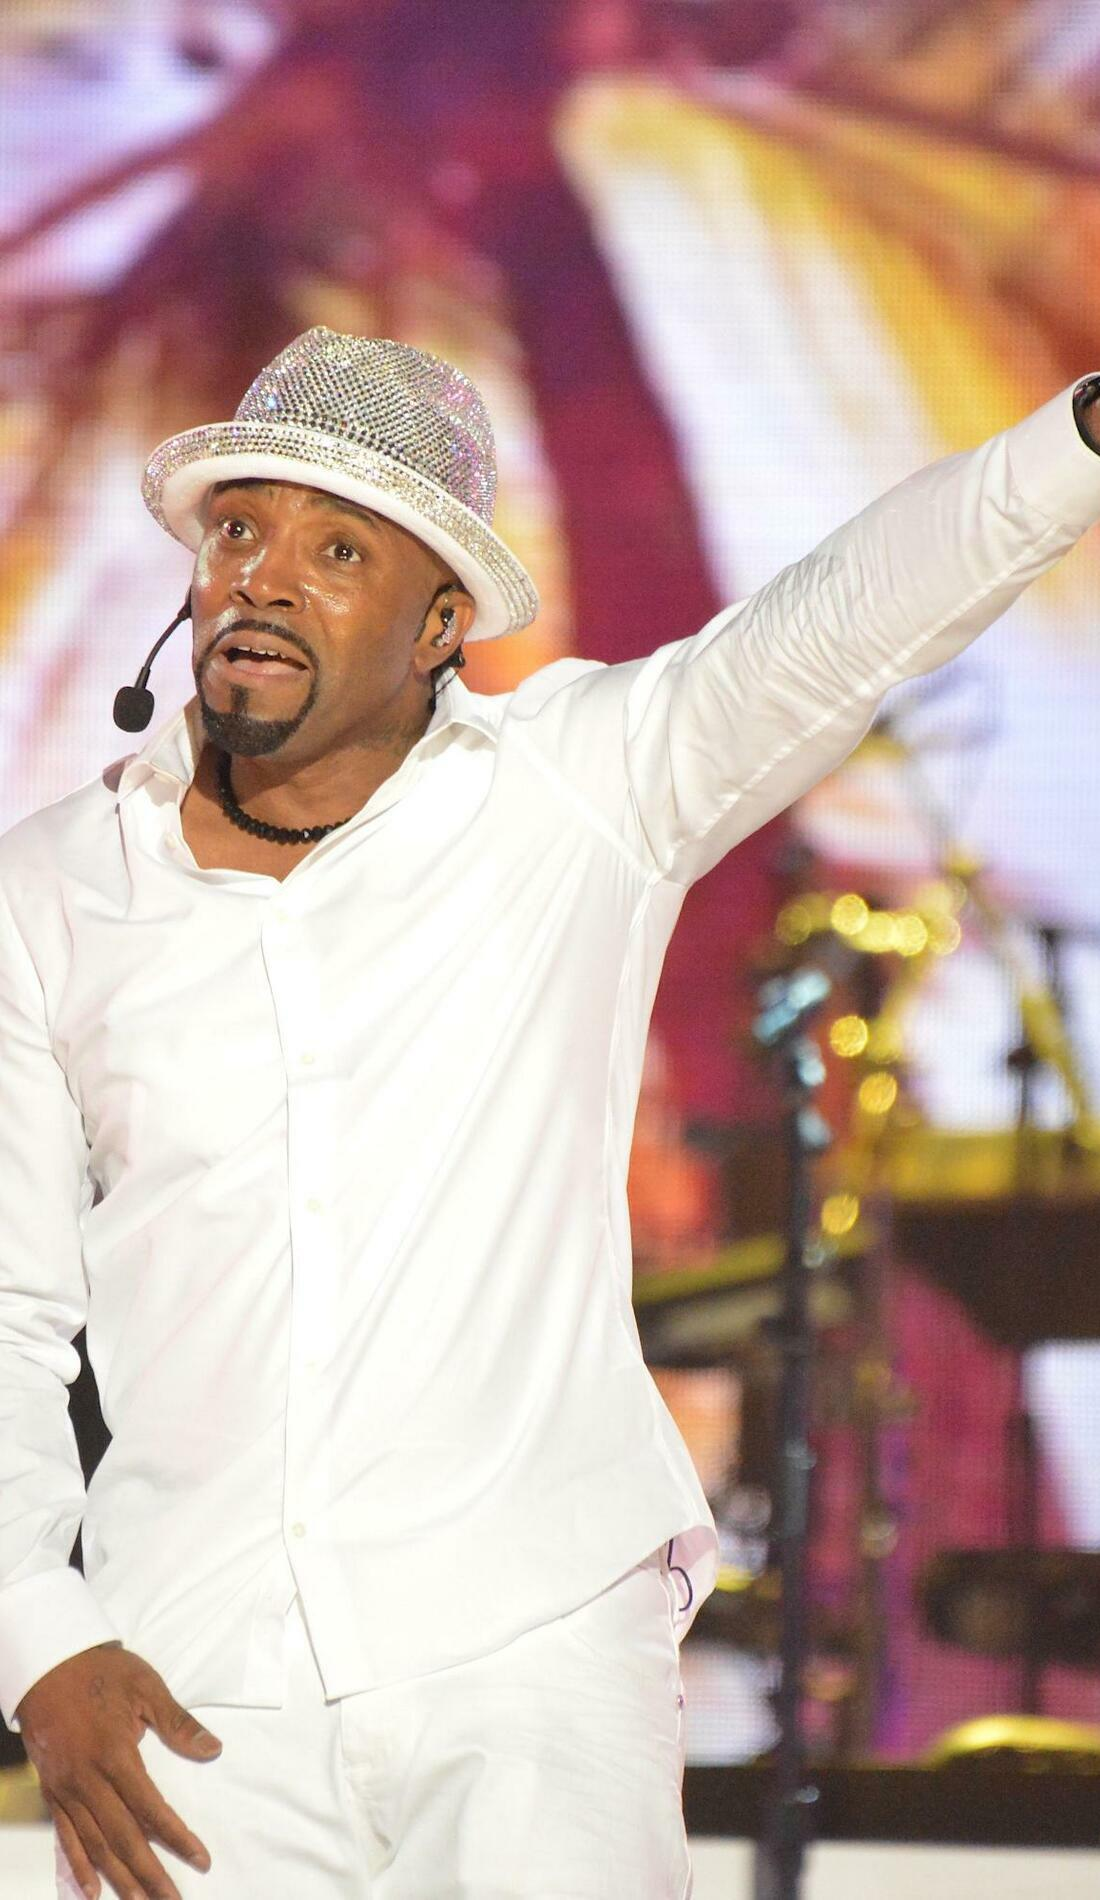 A Teddy Riley live event